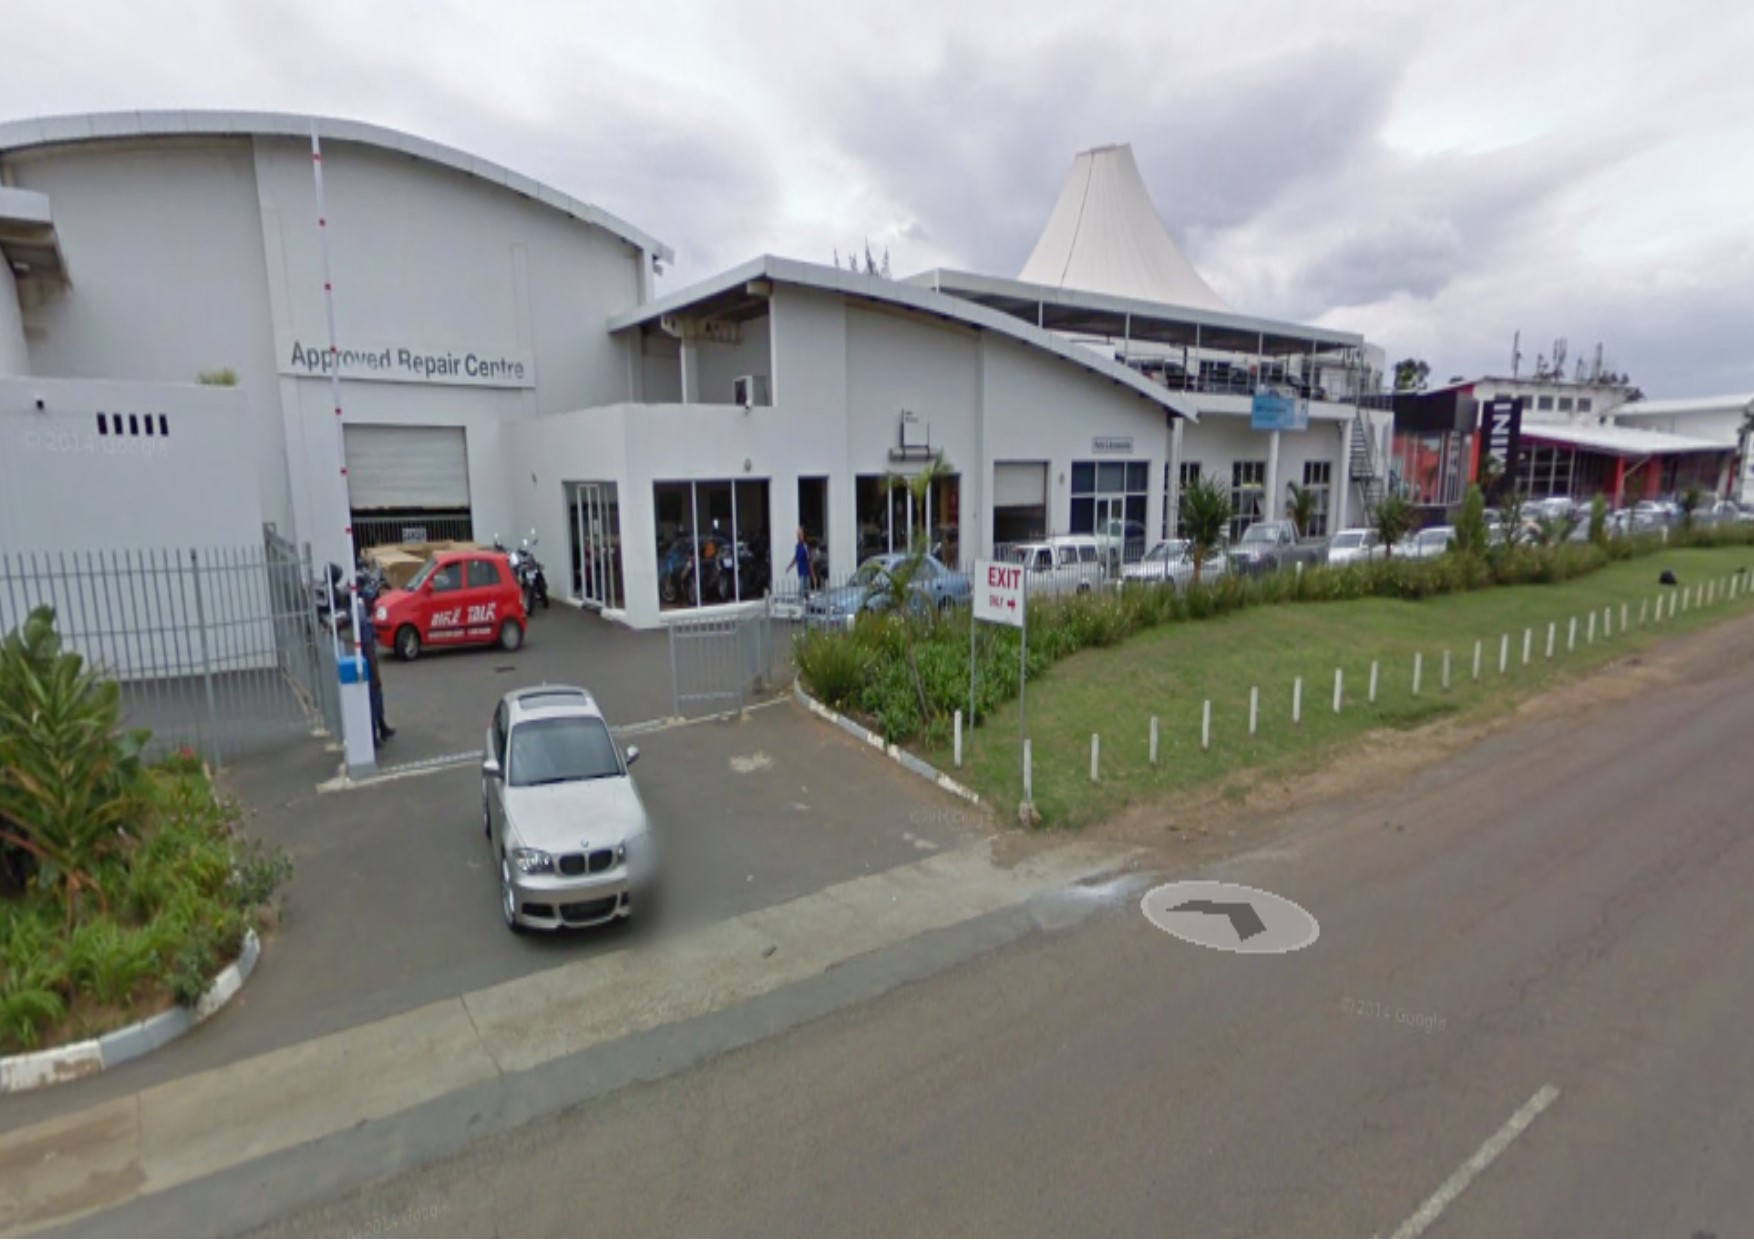 Santam Drive-In Center Umhlanga